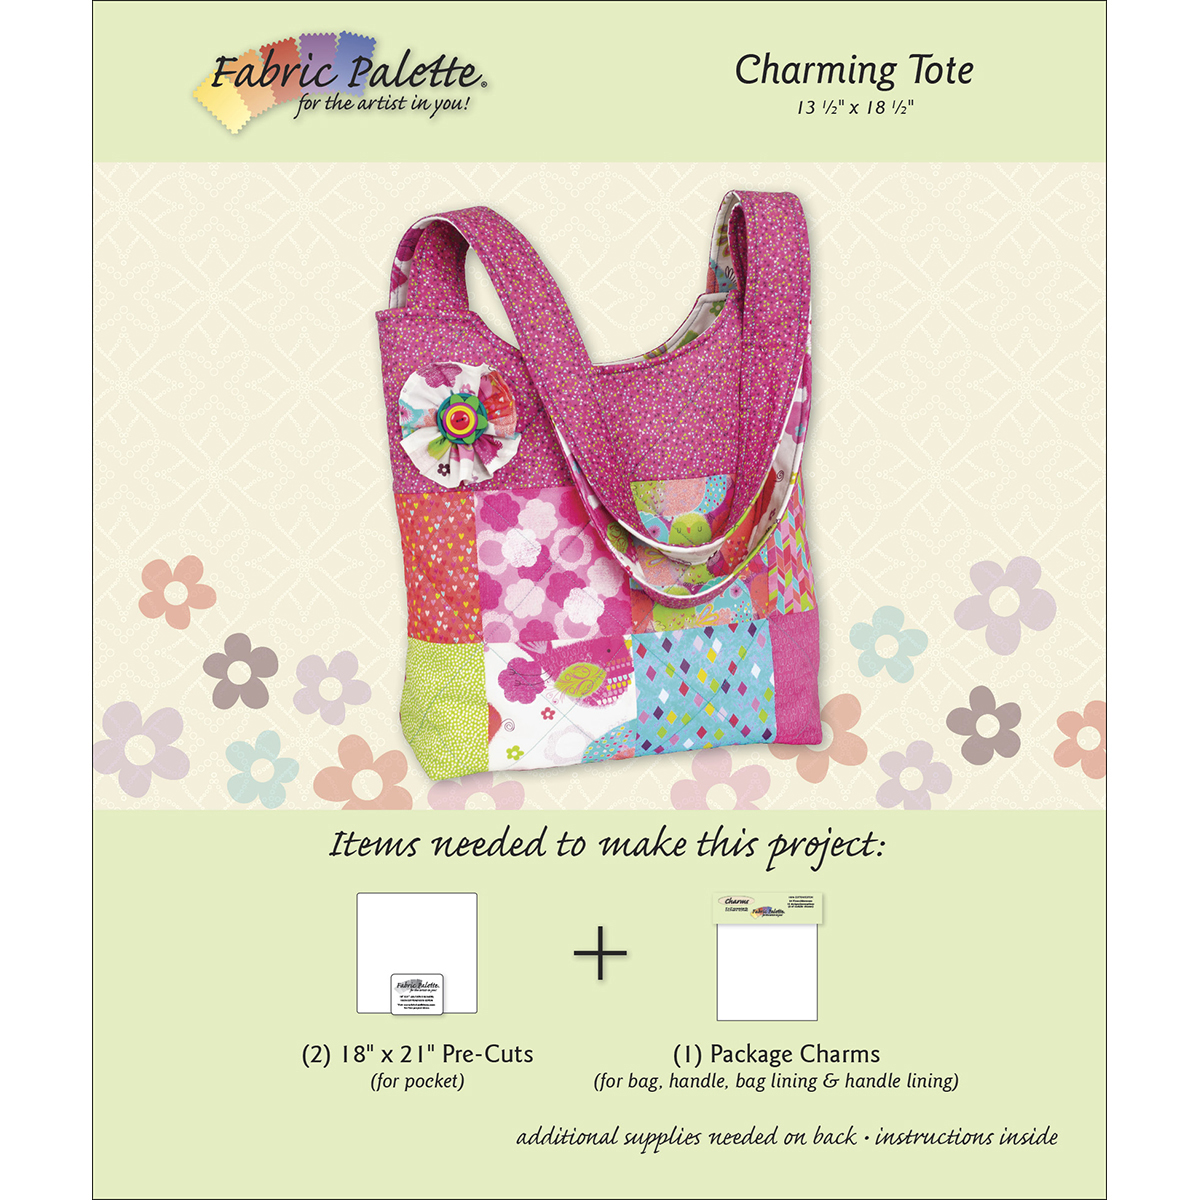 Fabric Palette Project Sheet-Charming Tote